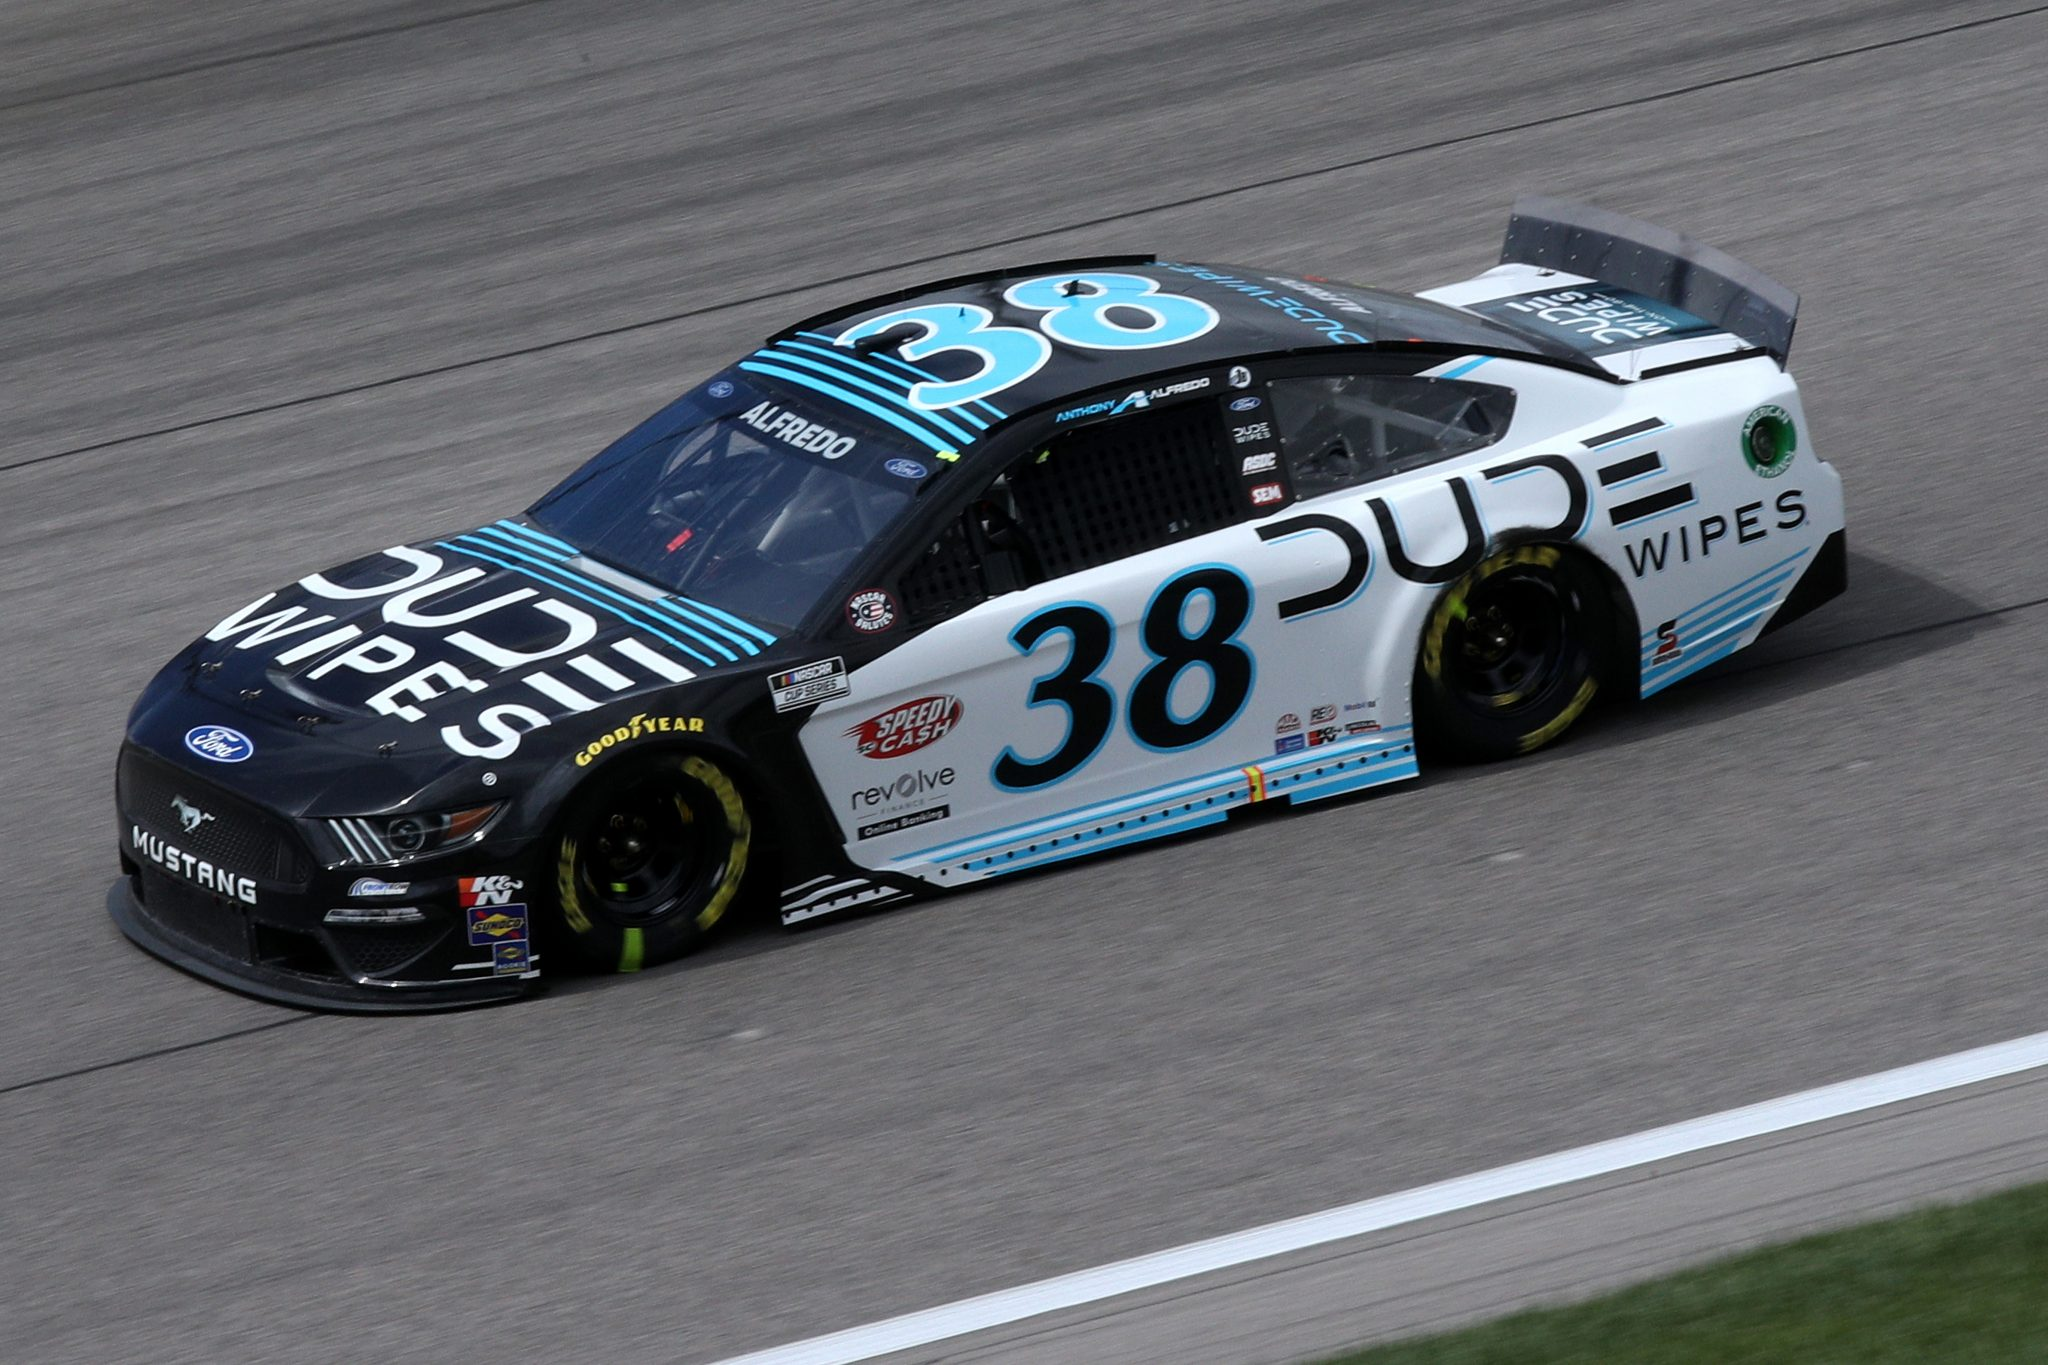 KANSAS CITY, KANSAS - MAY 02: Anthony Alfredo, driver of the #38 Dude Wipes Ford, drives during the NASCAR Cup Series Buschy McBusch Race 400 at Kansas Speedway on May 02, 2021 in Kansas City, Kansas. (Photo by Sean Gardner/Getty Images) | Getty Images